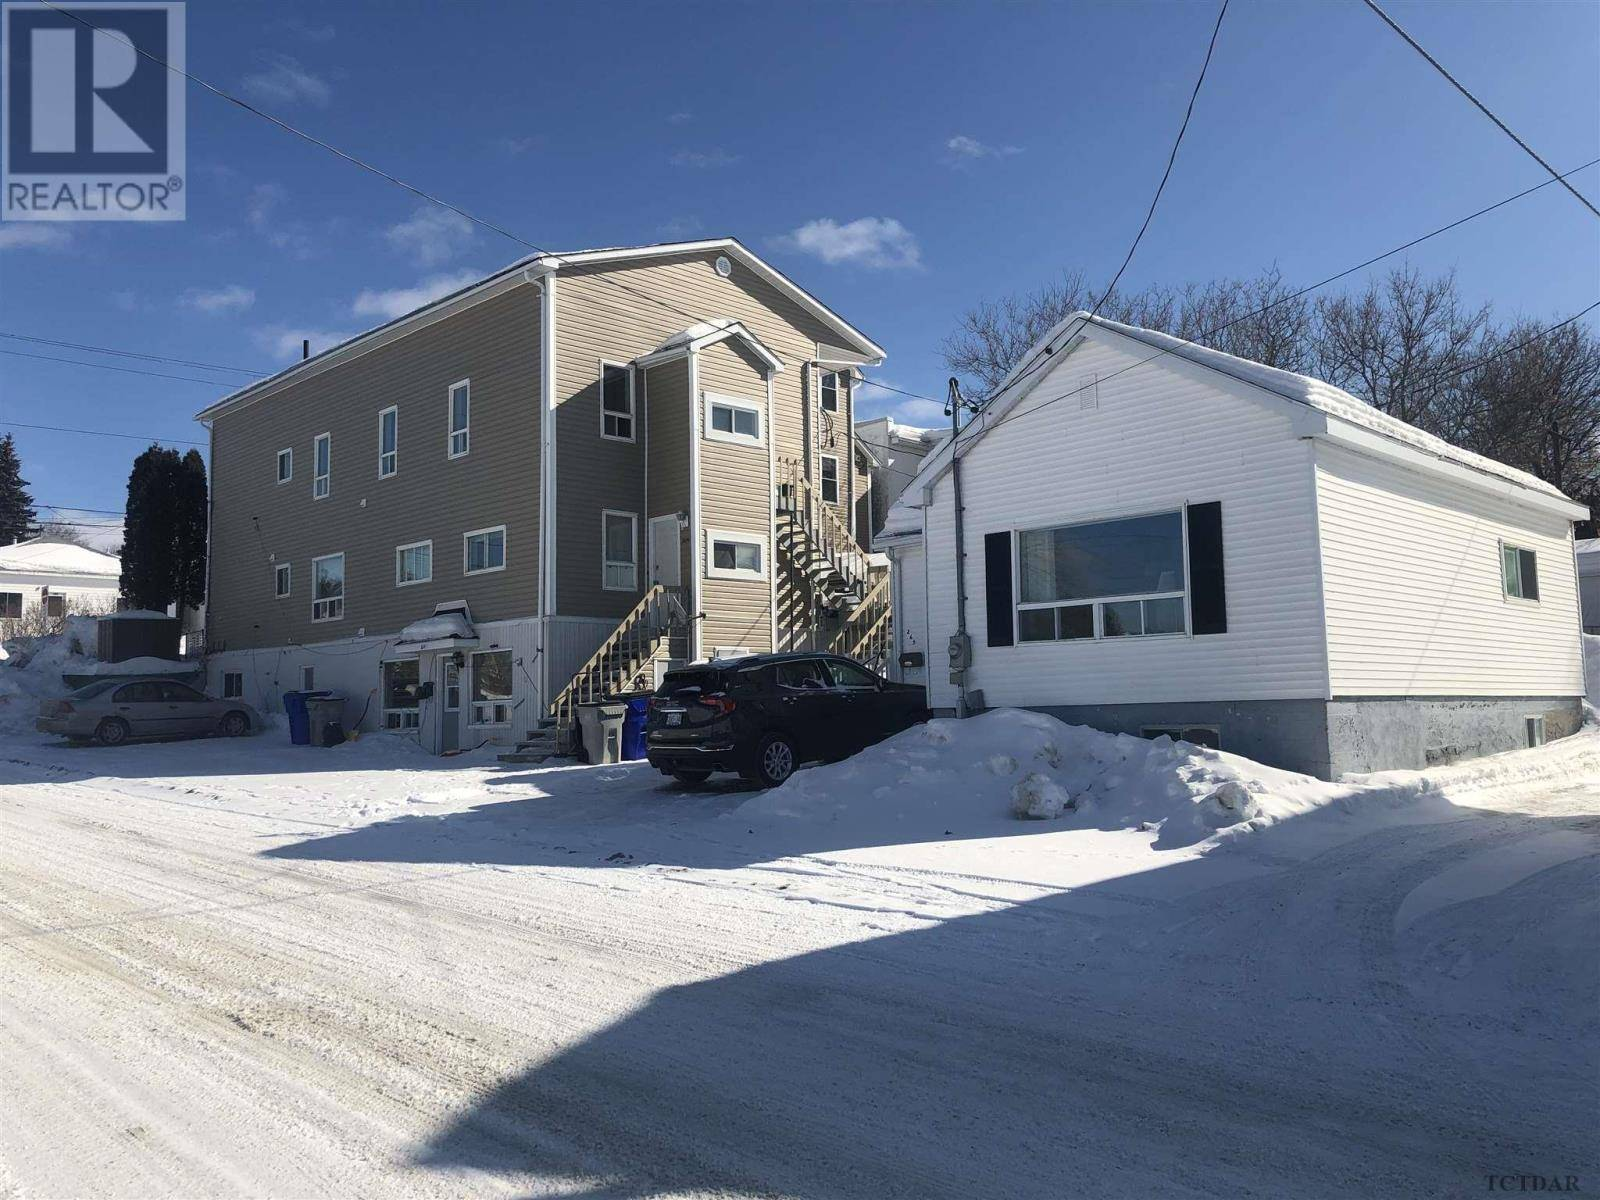 Townhouse for sale at 190 Spruce St N Unit 189 Timmins Ontario - MLS: TM200475